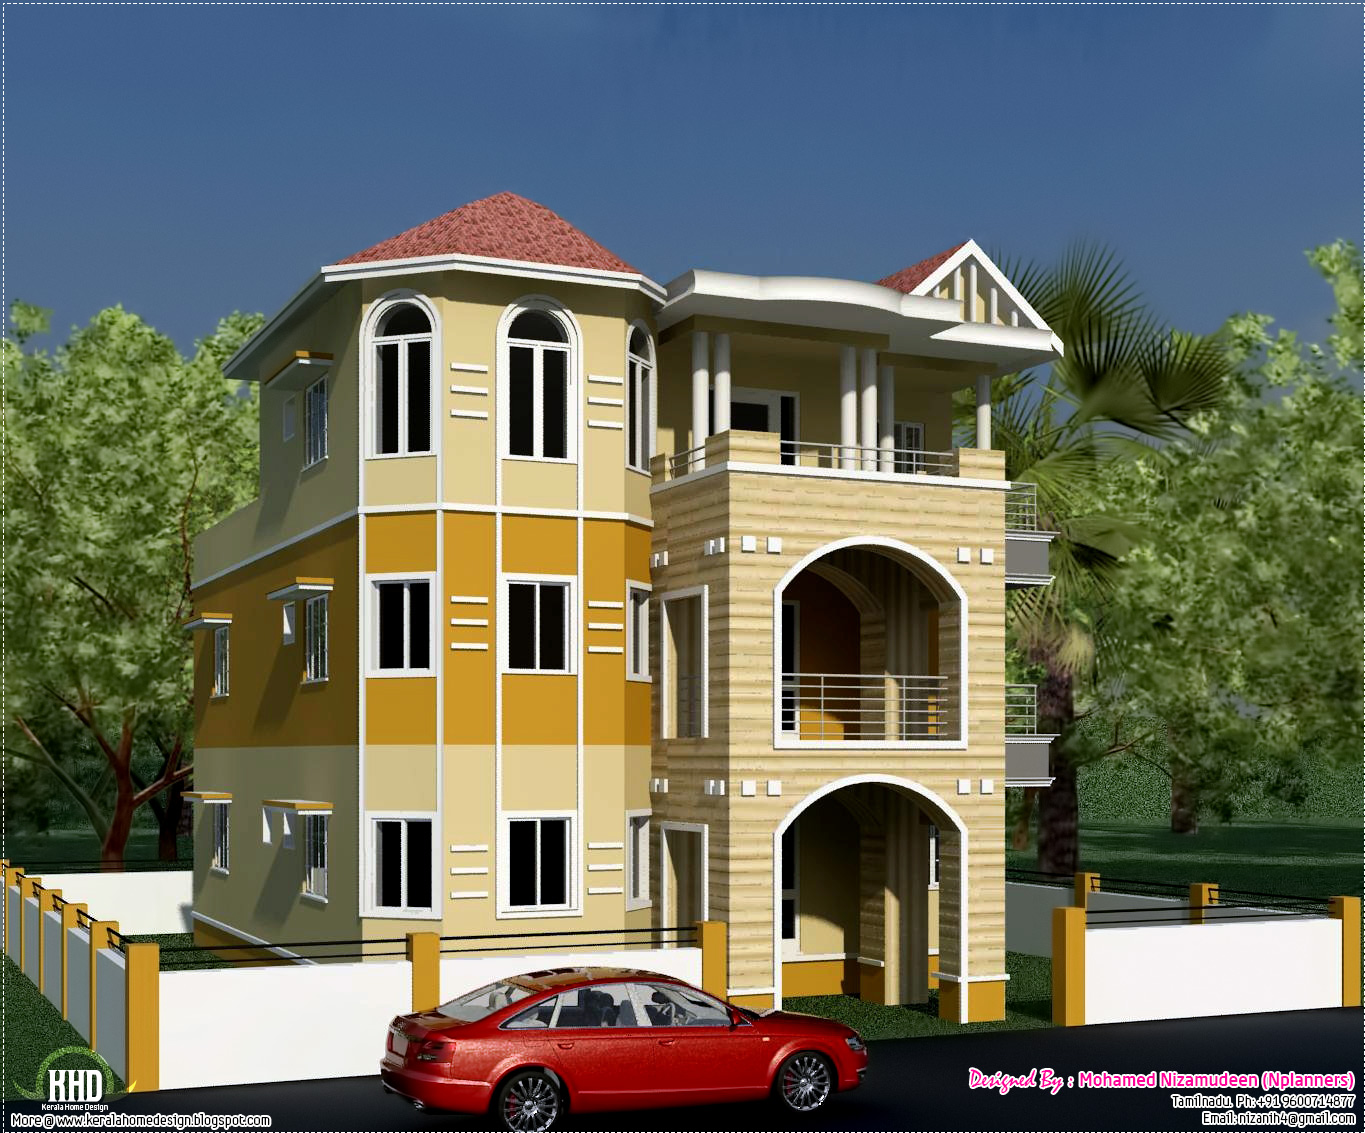 Three Floor House 3 Storey South Indian House Design Architecture House Plans